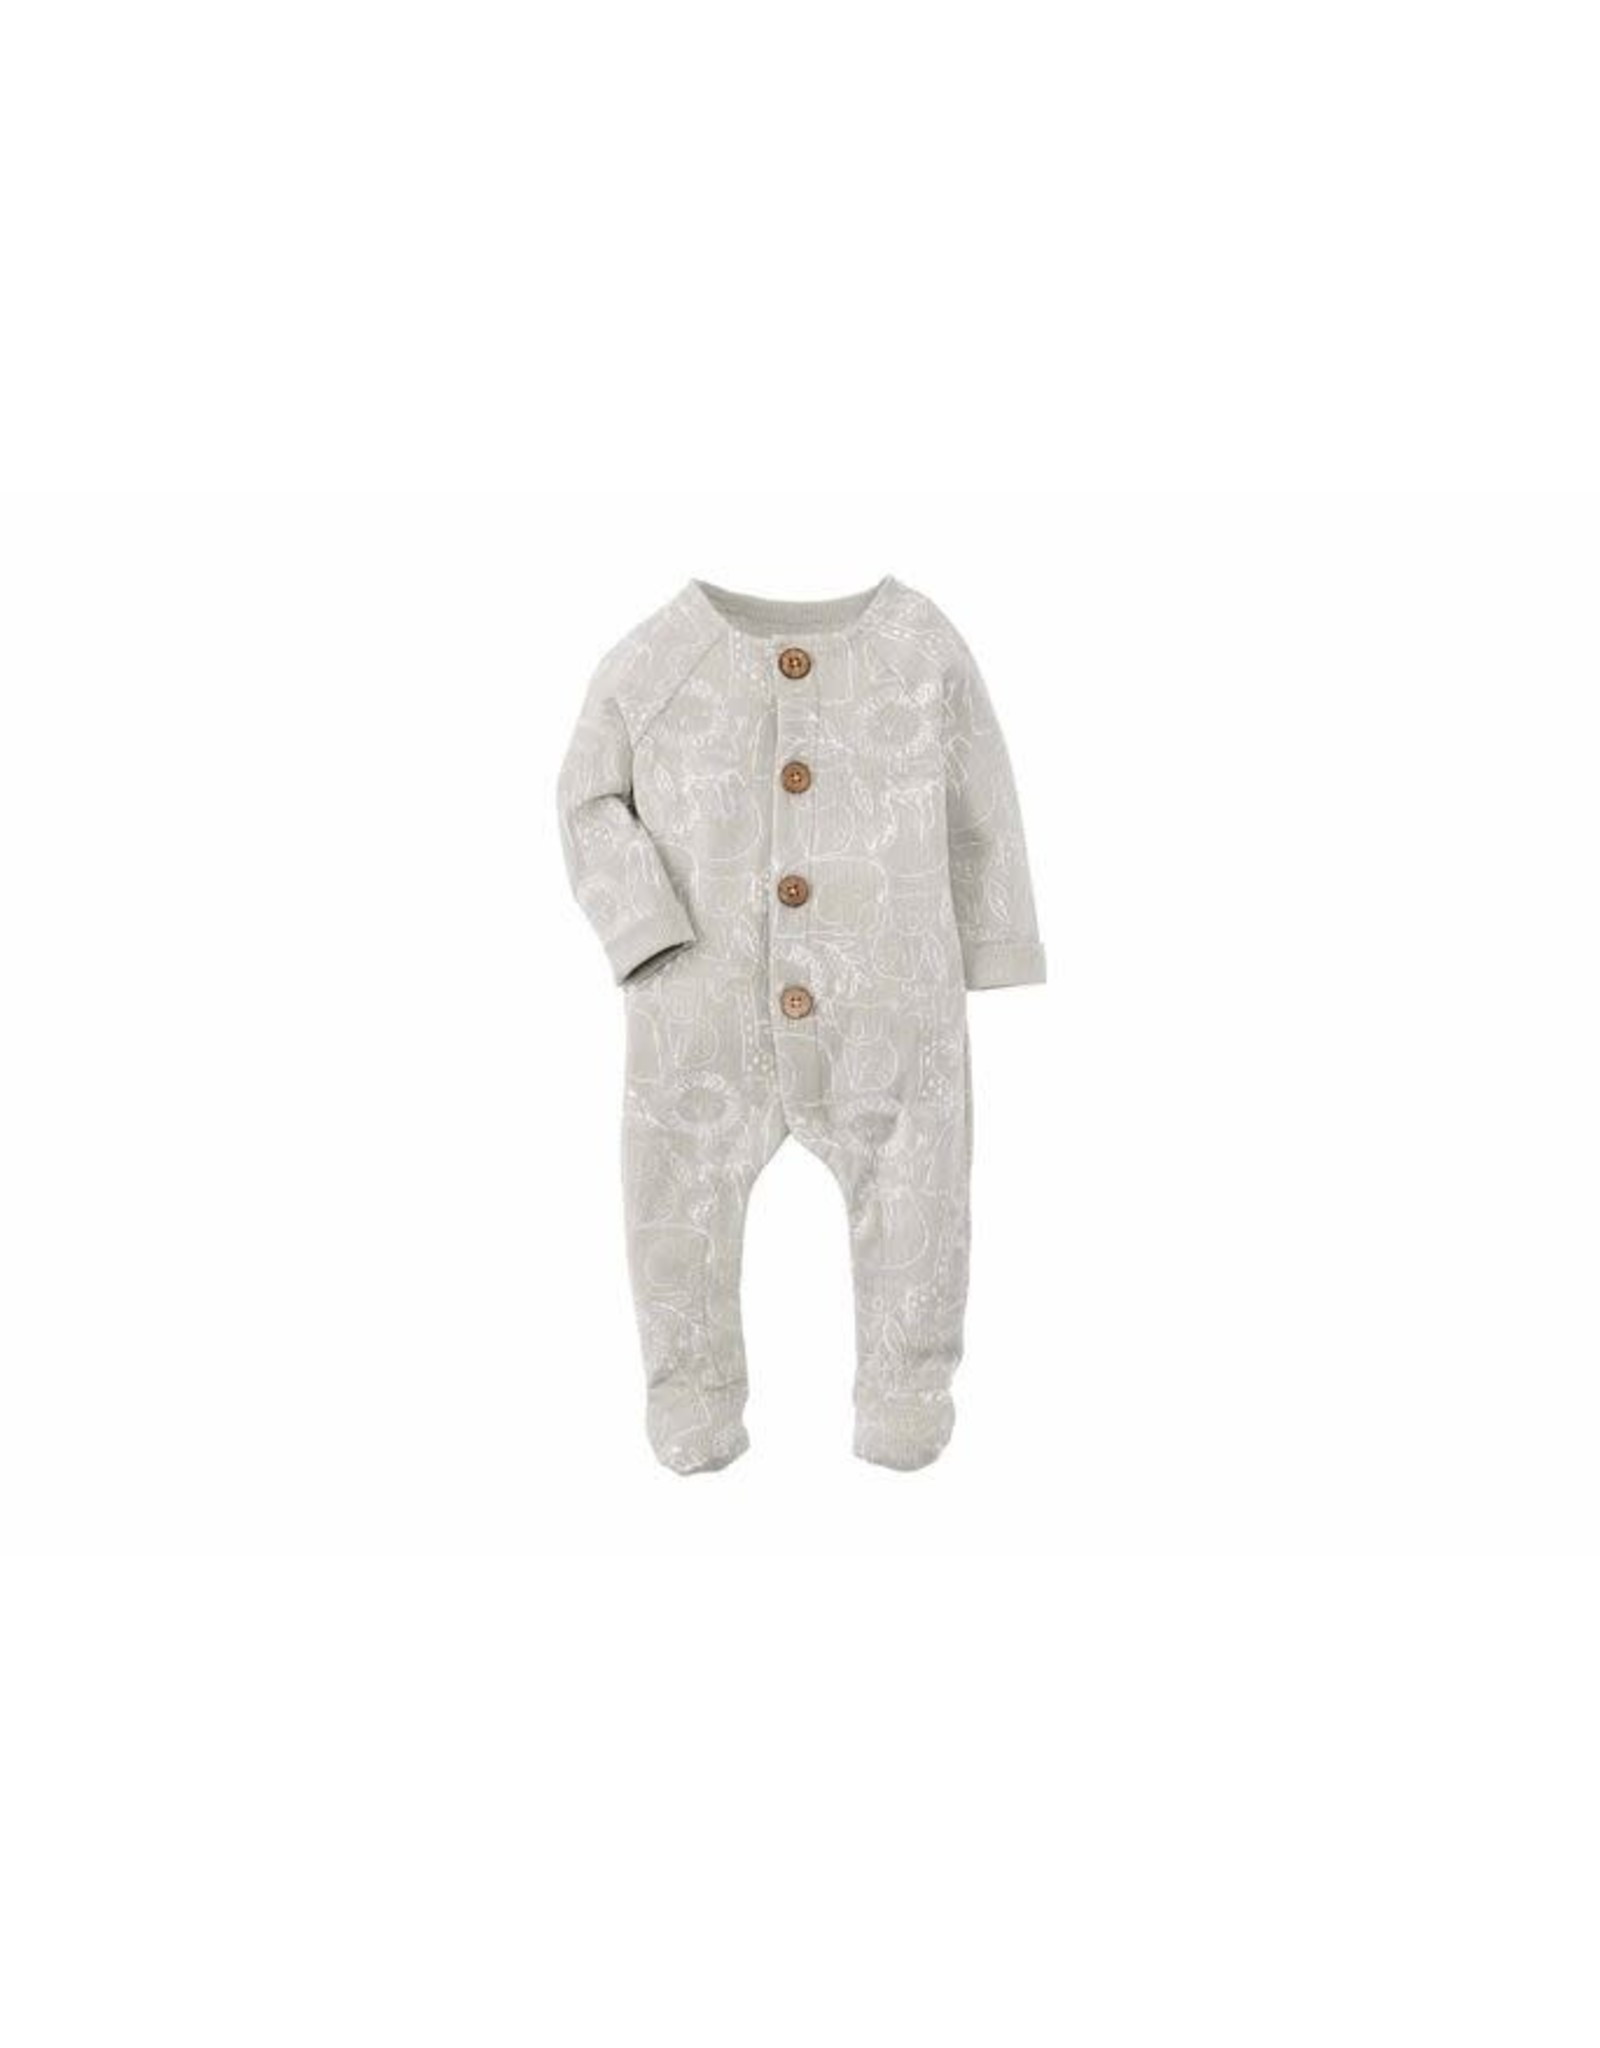 Mudpie Mud Pie- Safari Print Sleeper 3/6M